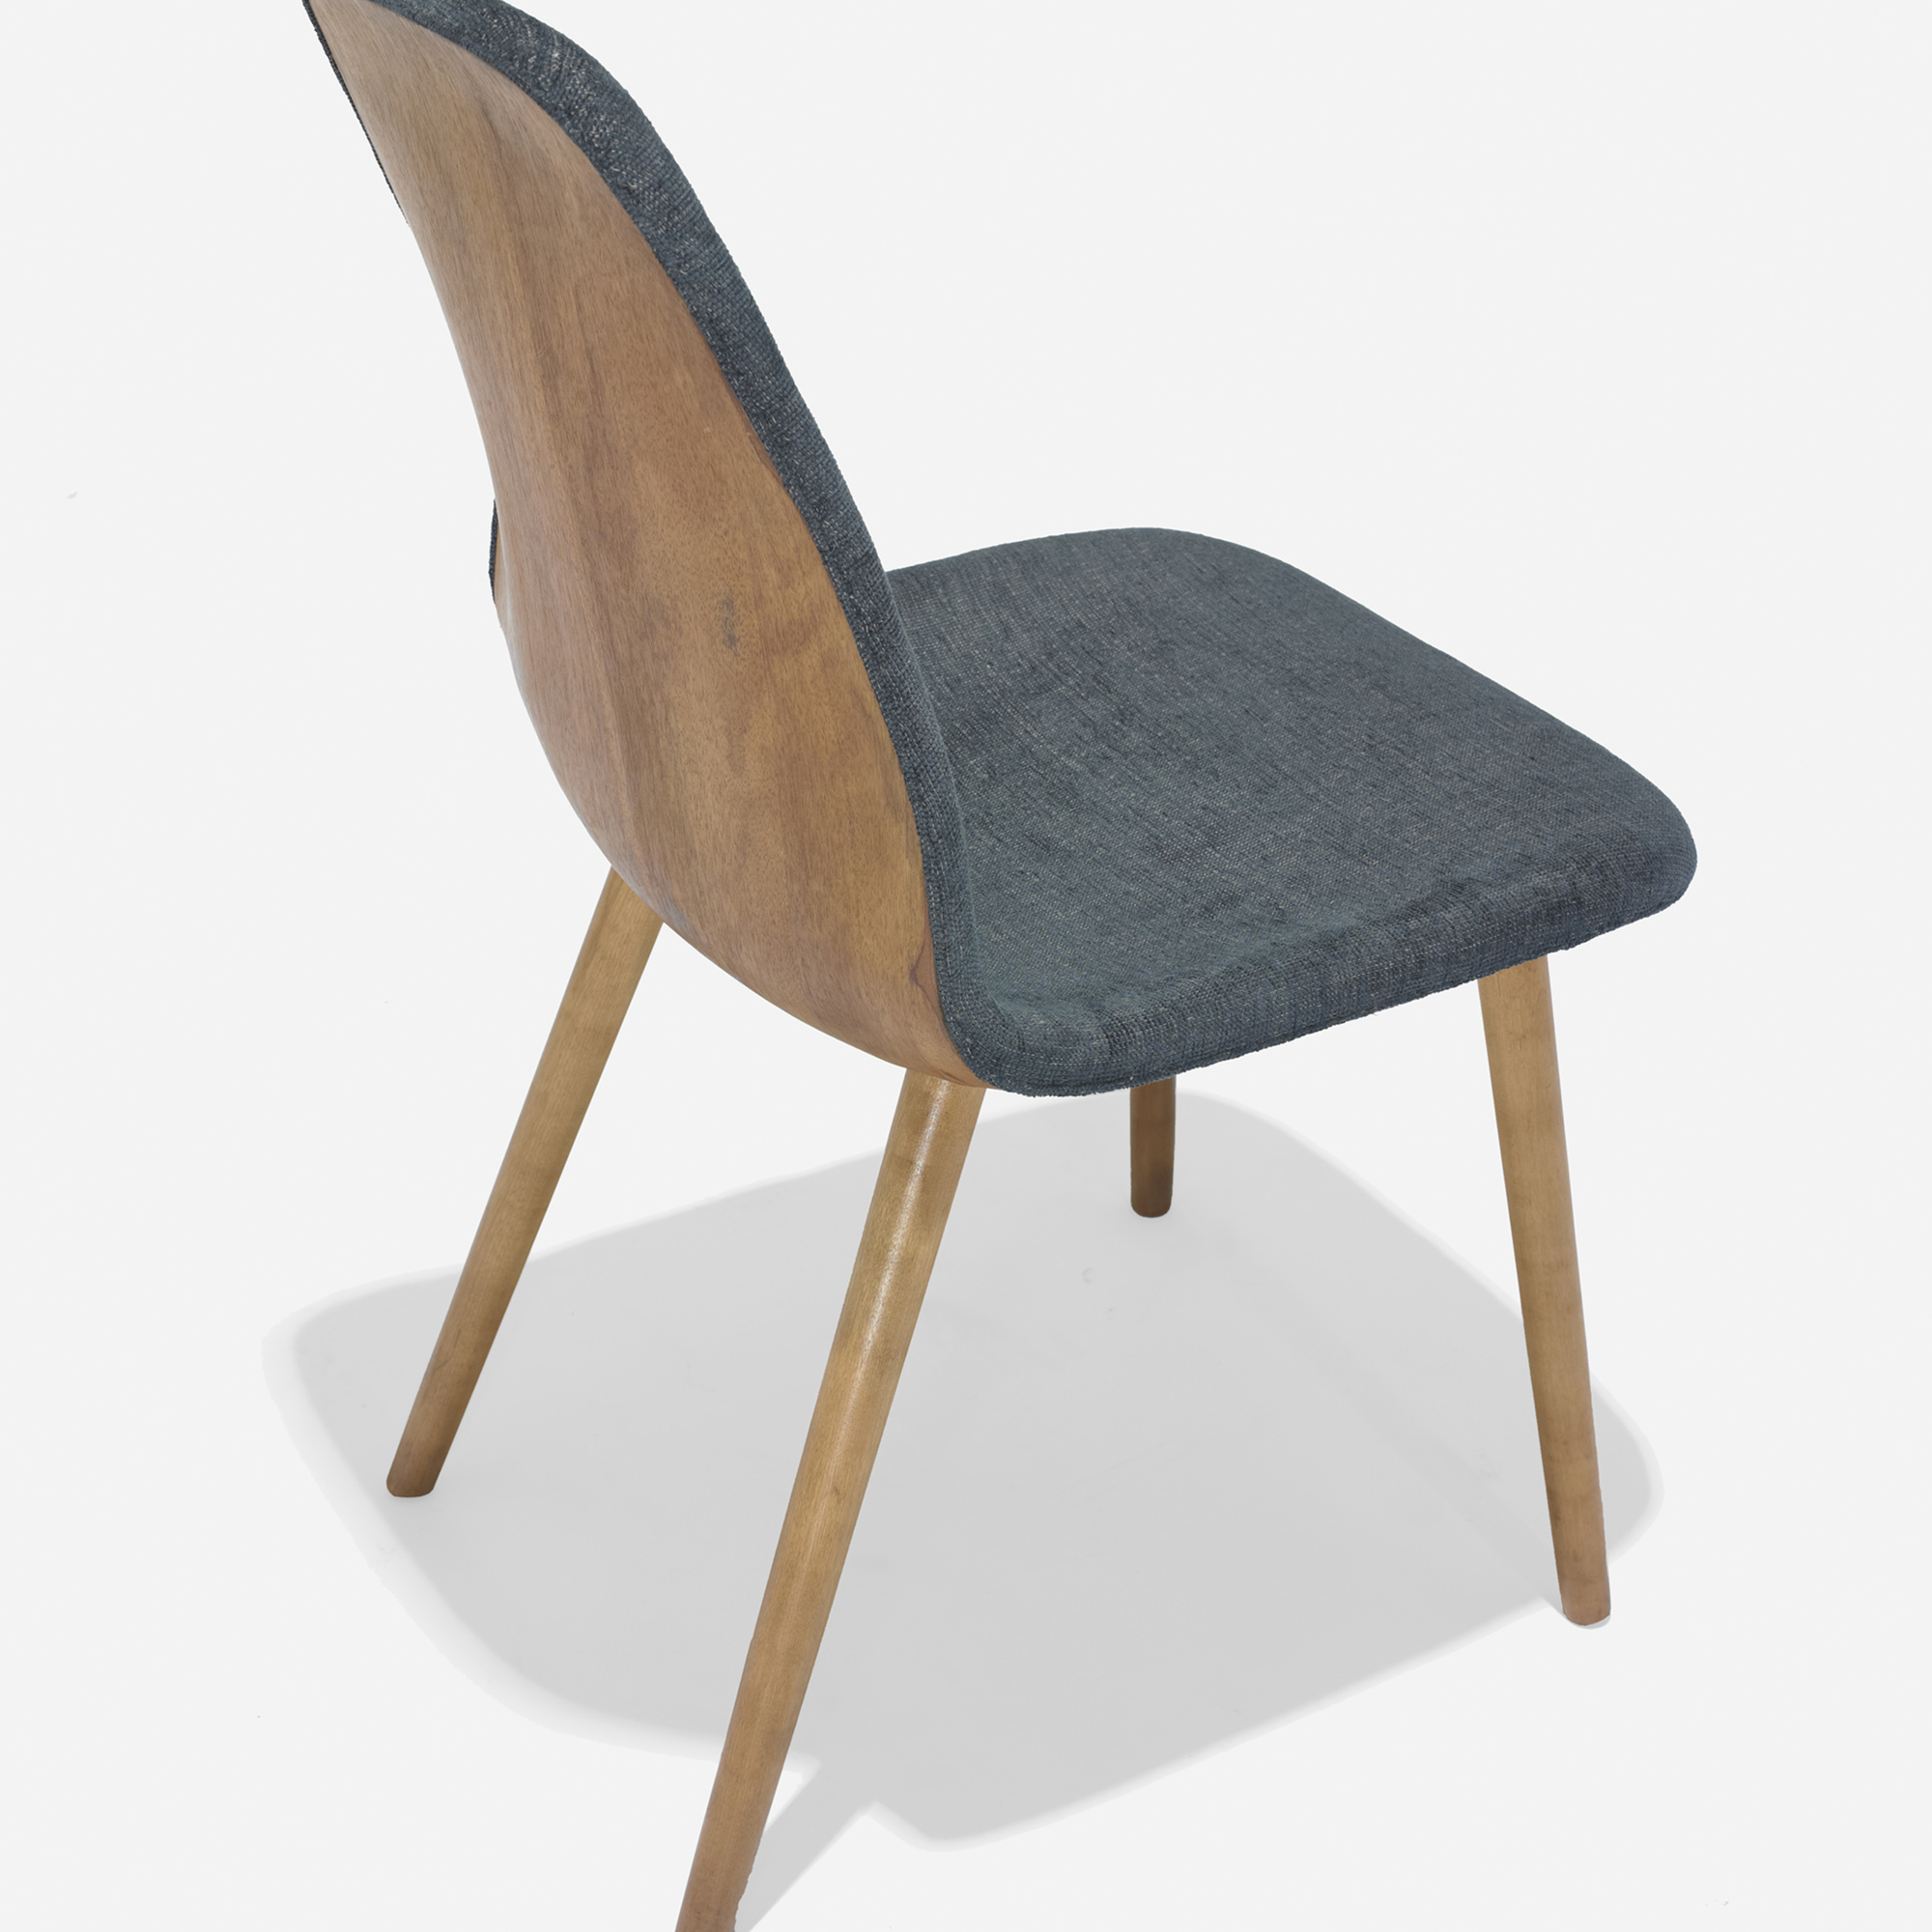 ... 123: Charles Eames And Eero Saarinen / Chair From The Museum Of Modern  Art Organic